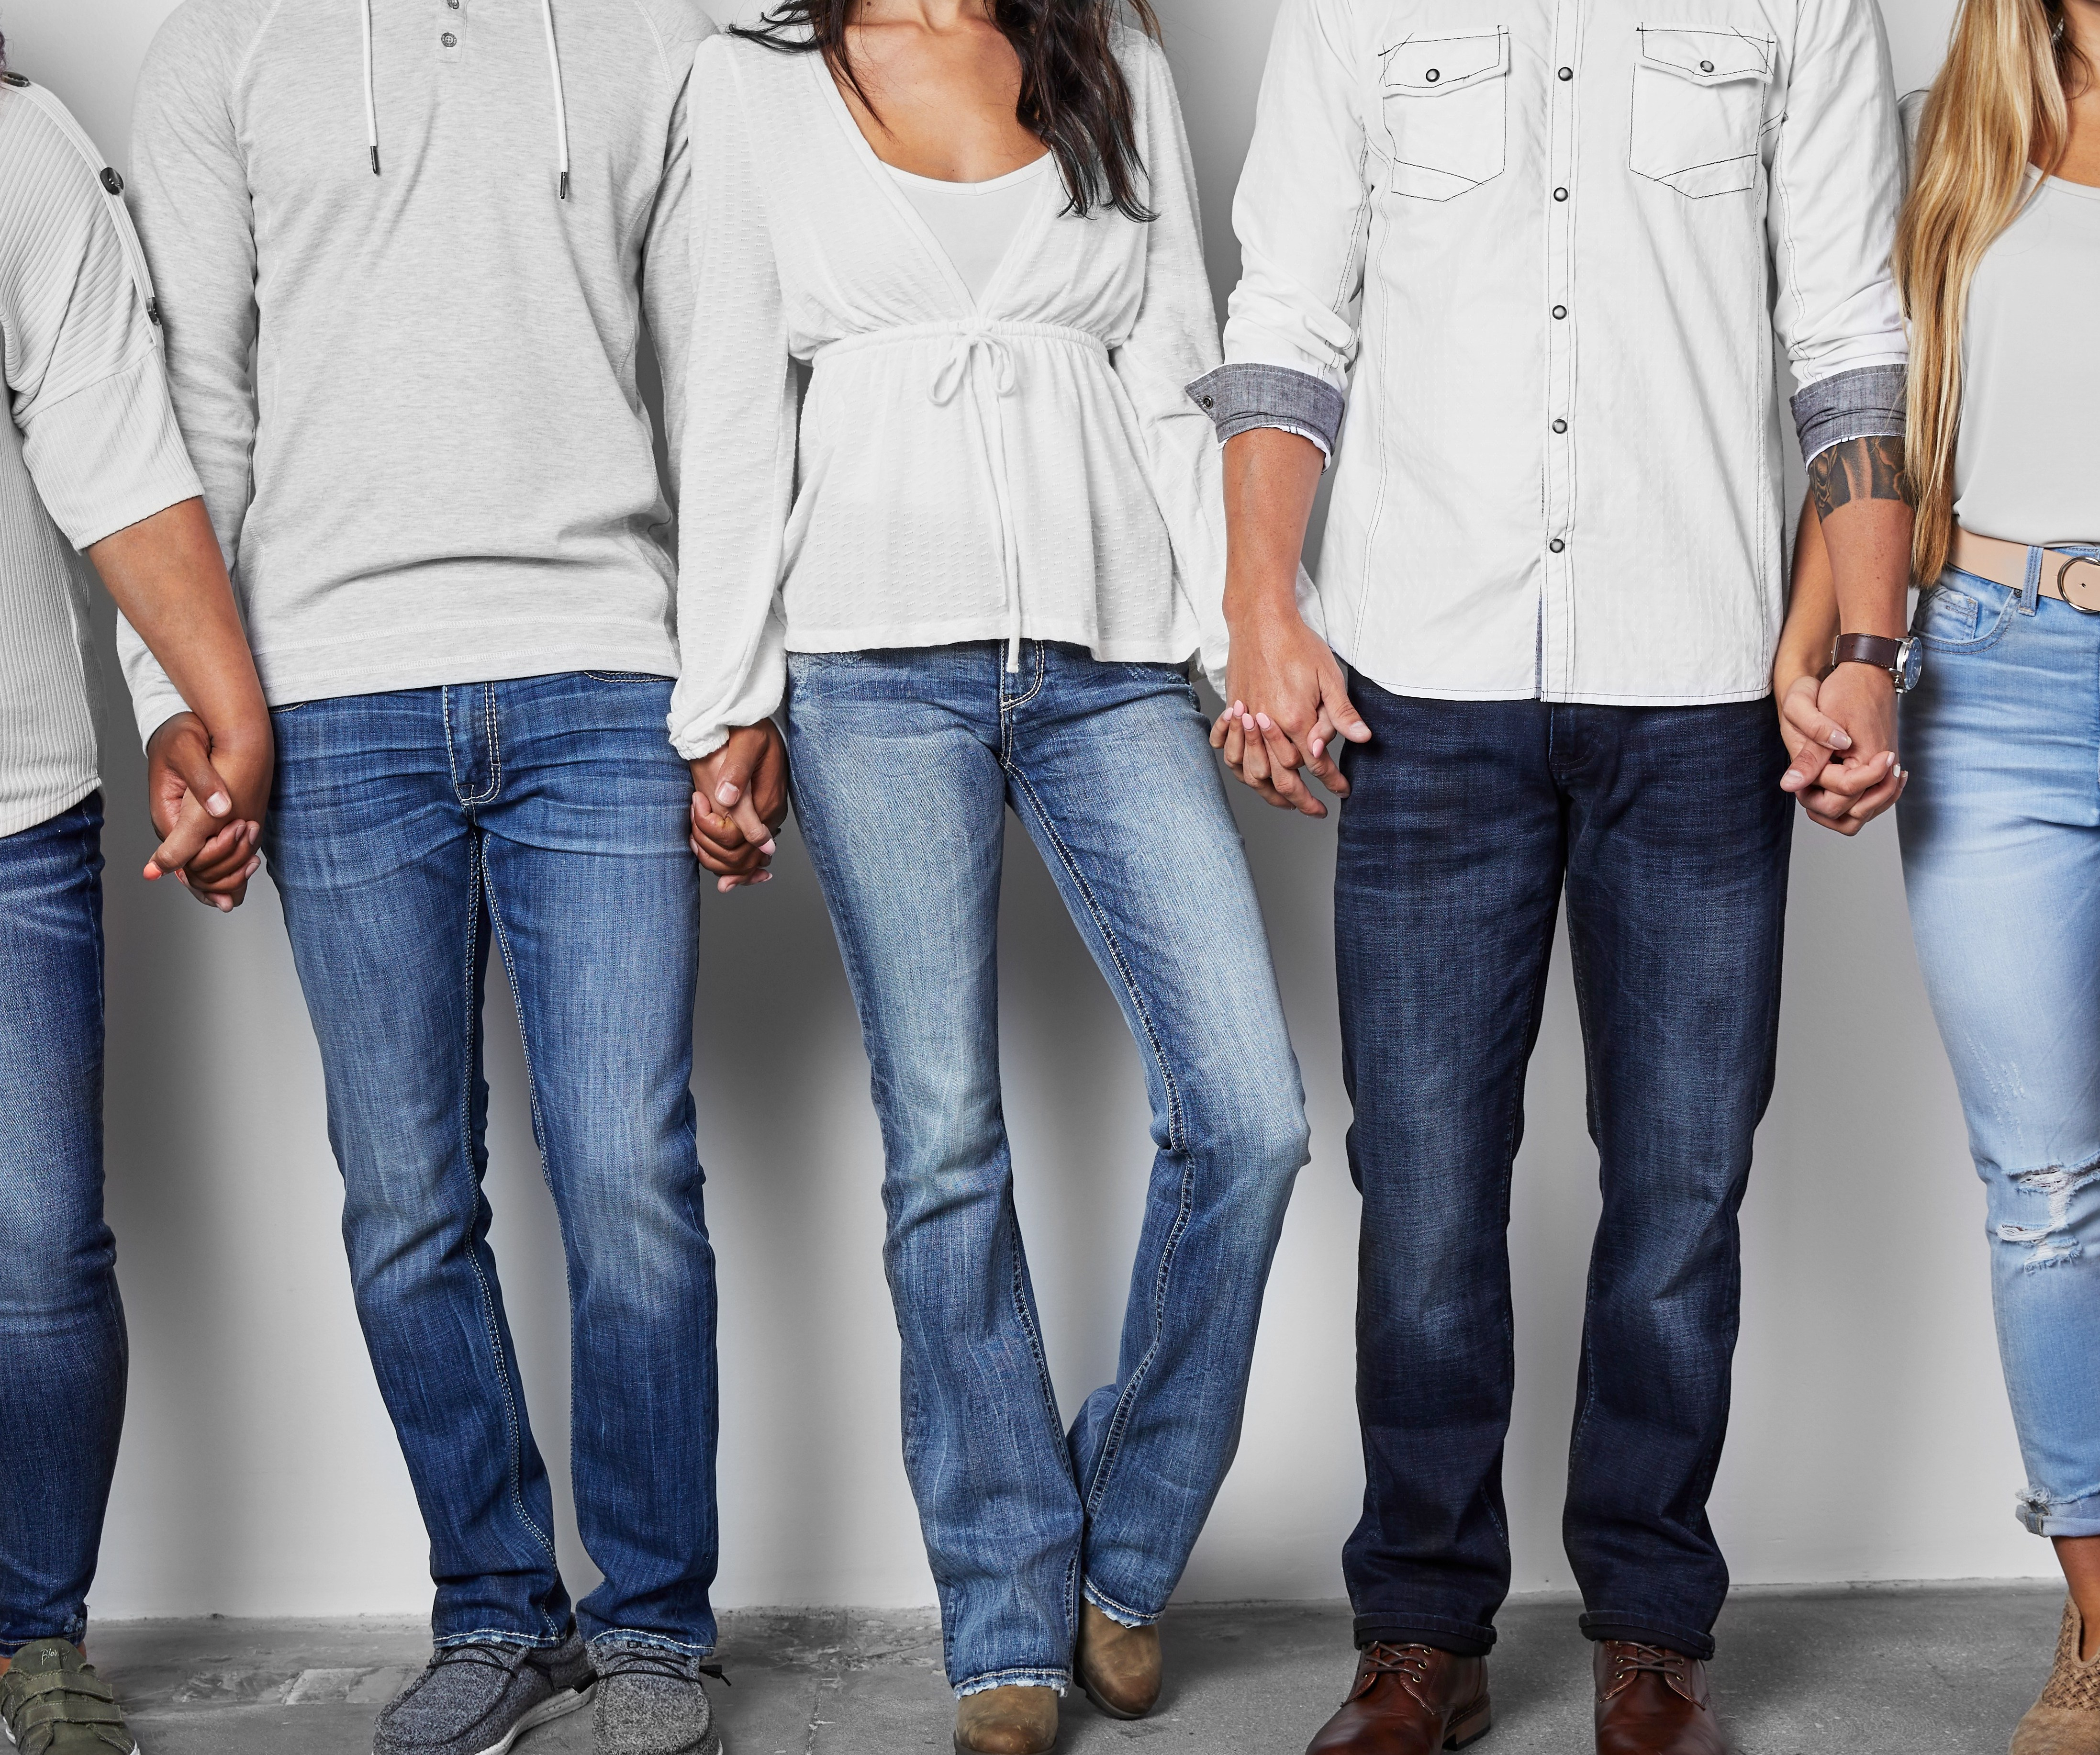 American Cancer Society Denim Days Presented By Buckle - Breast Cancer Awareness Month Fundraising Campaign